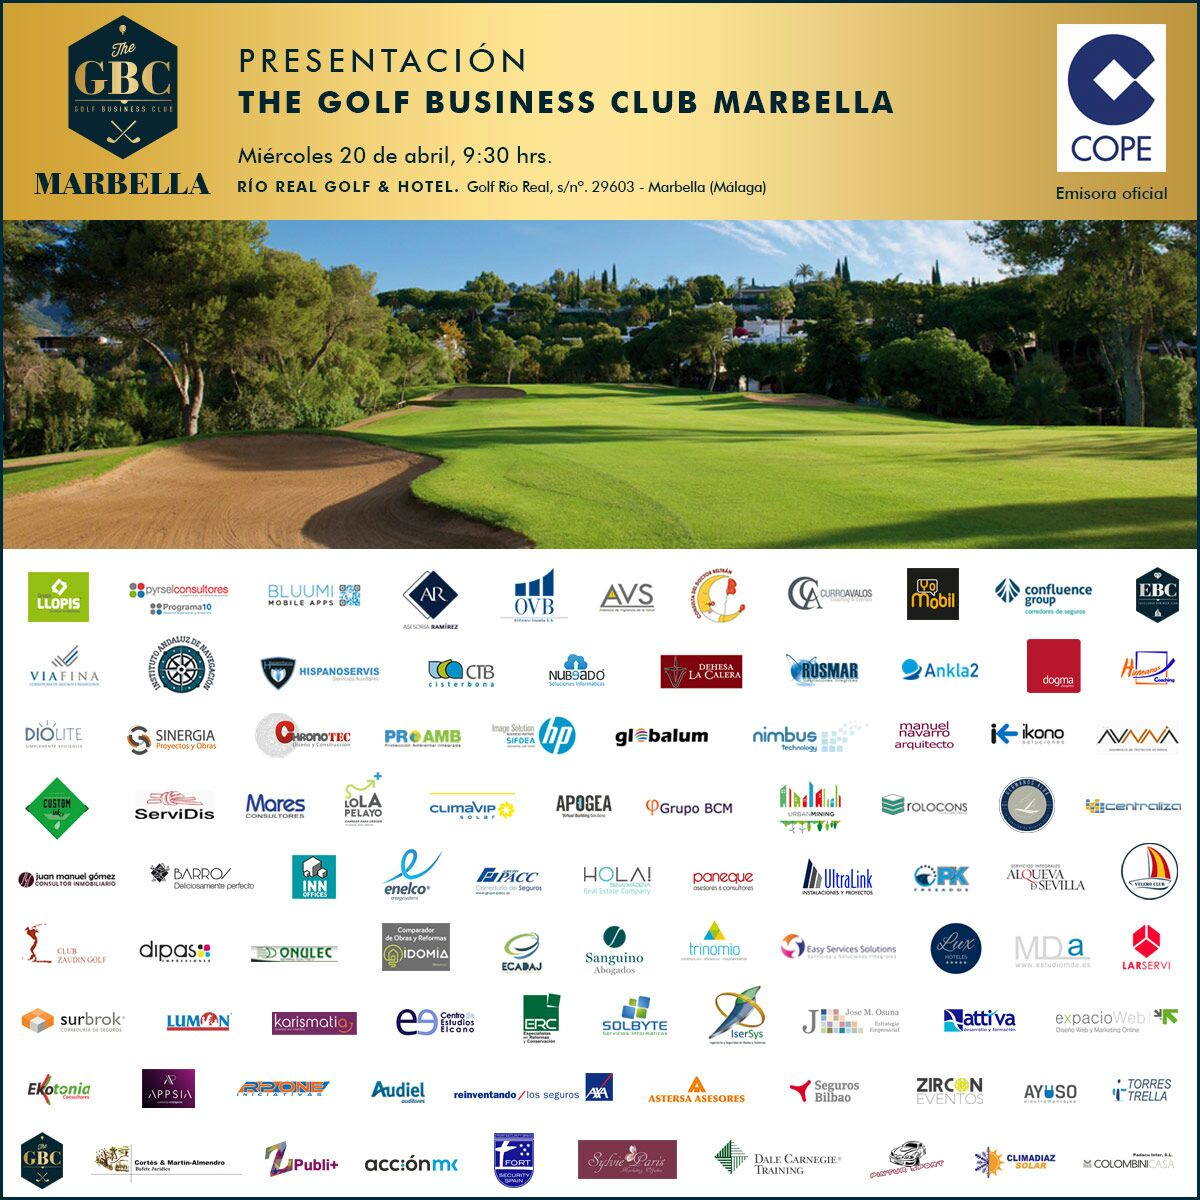 The_Golf_Business_Club